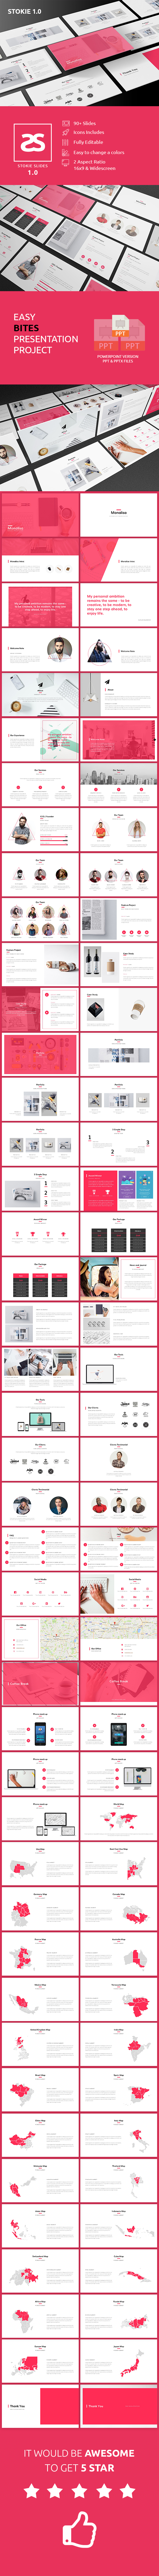 GraphicRiver Creative Powerpoint Template 1.0 20745690